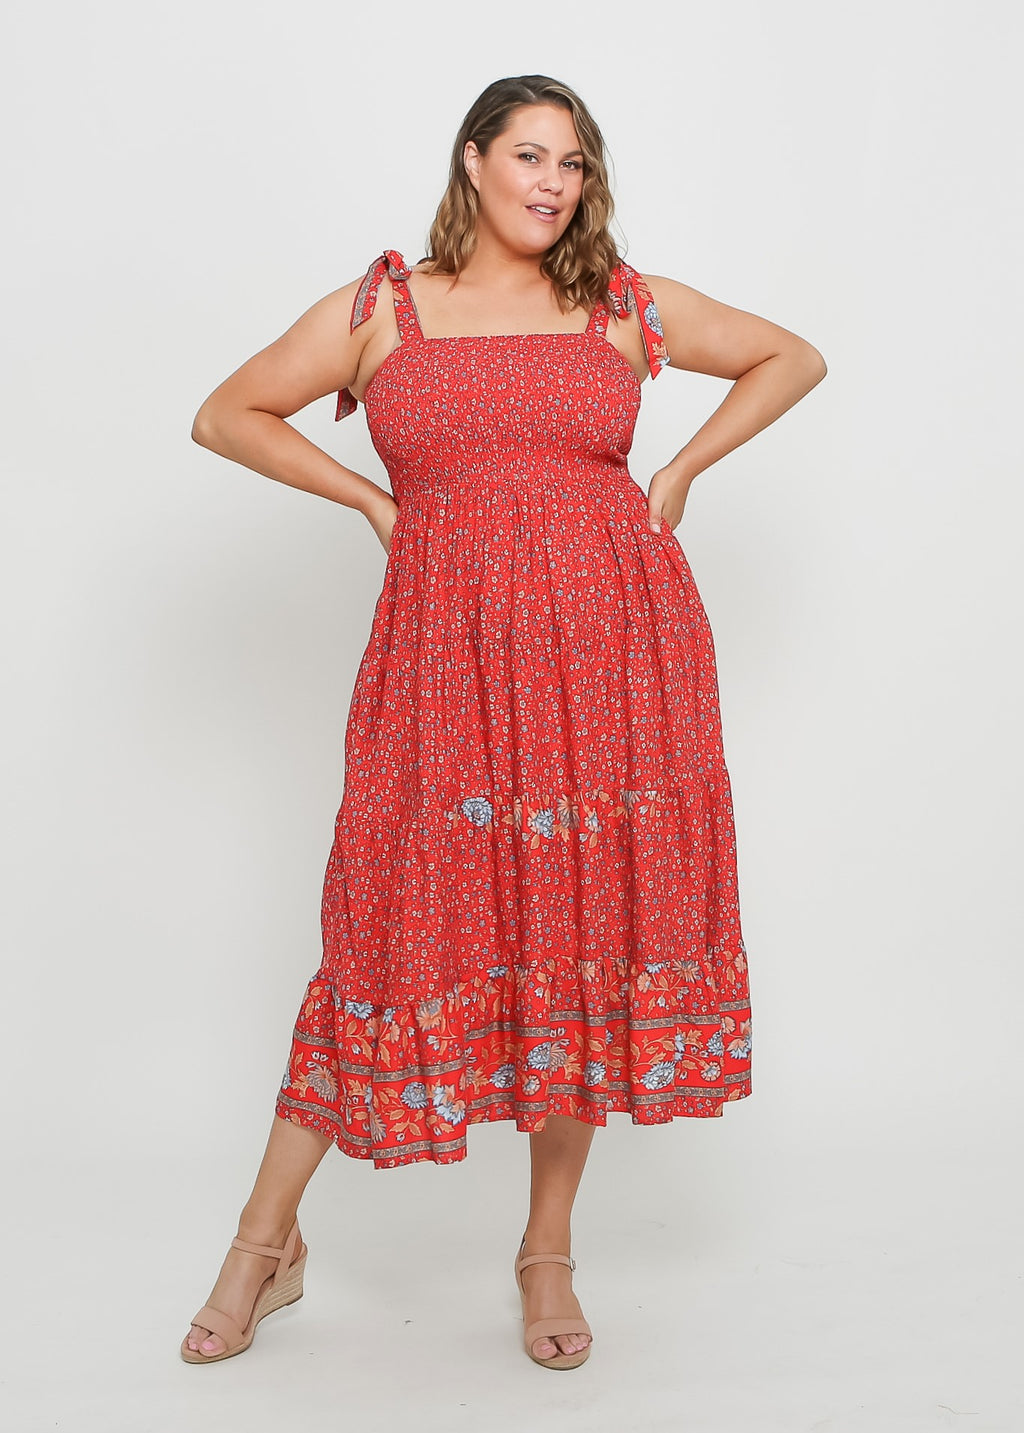 JESSY DRESS - RED PRINT